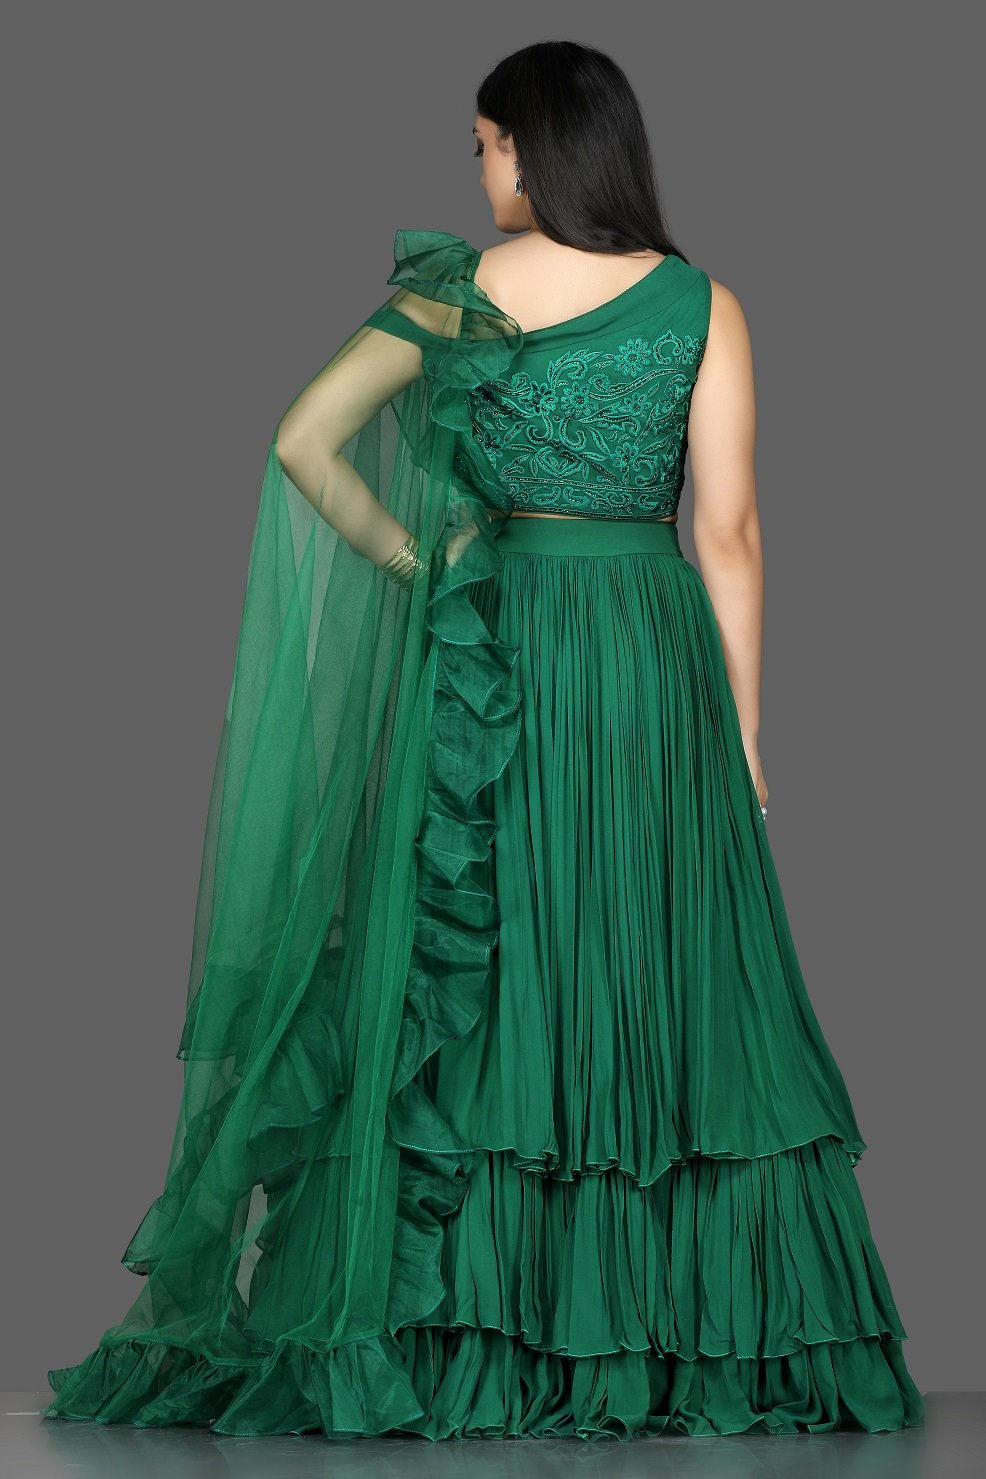 Buy stylish bottle green georgette layered lehenga online in USA with ruffle dupatta. Flaunt ethnic fashion with exquisite designer lehenga, Indian wedding dresses from Pure Elegance Indian fashion boutique in USA.-back